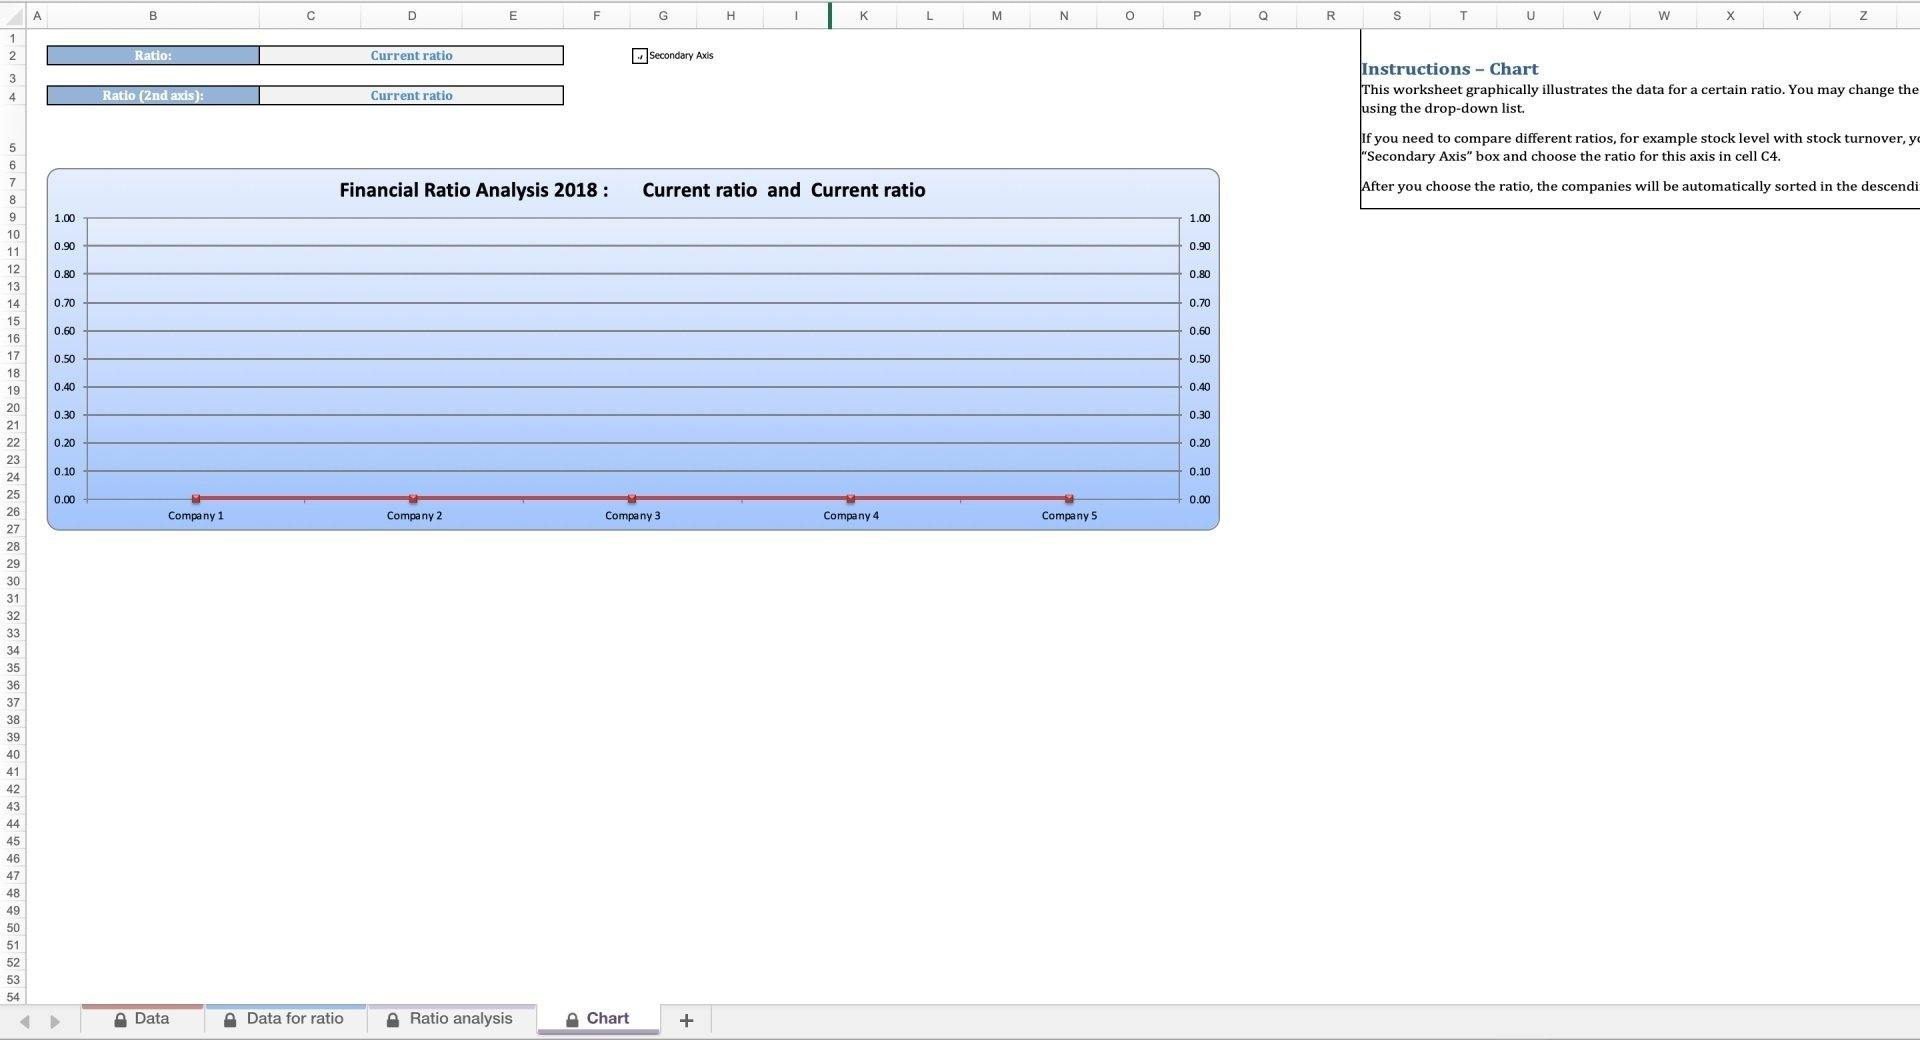 Financial Ratio Analysis (Monthly) Excel Model - Templarket -  Business Templates Marketplace